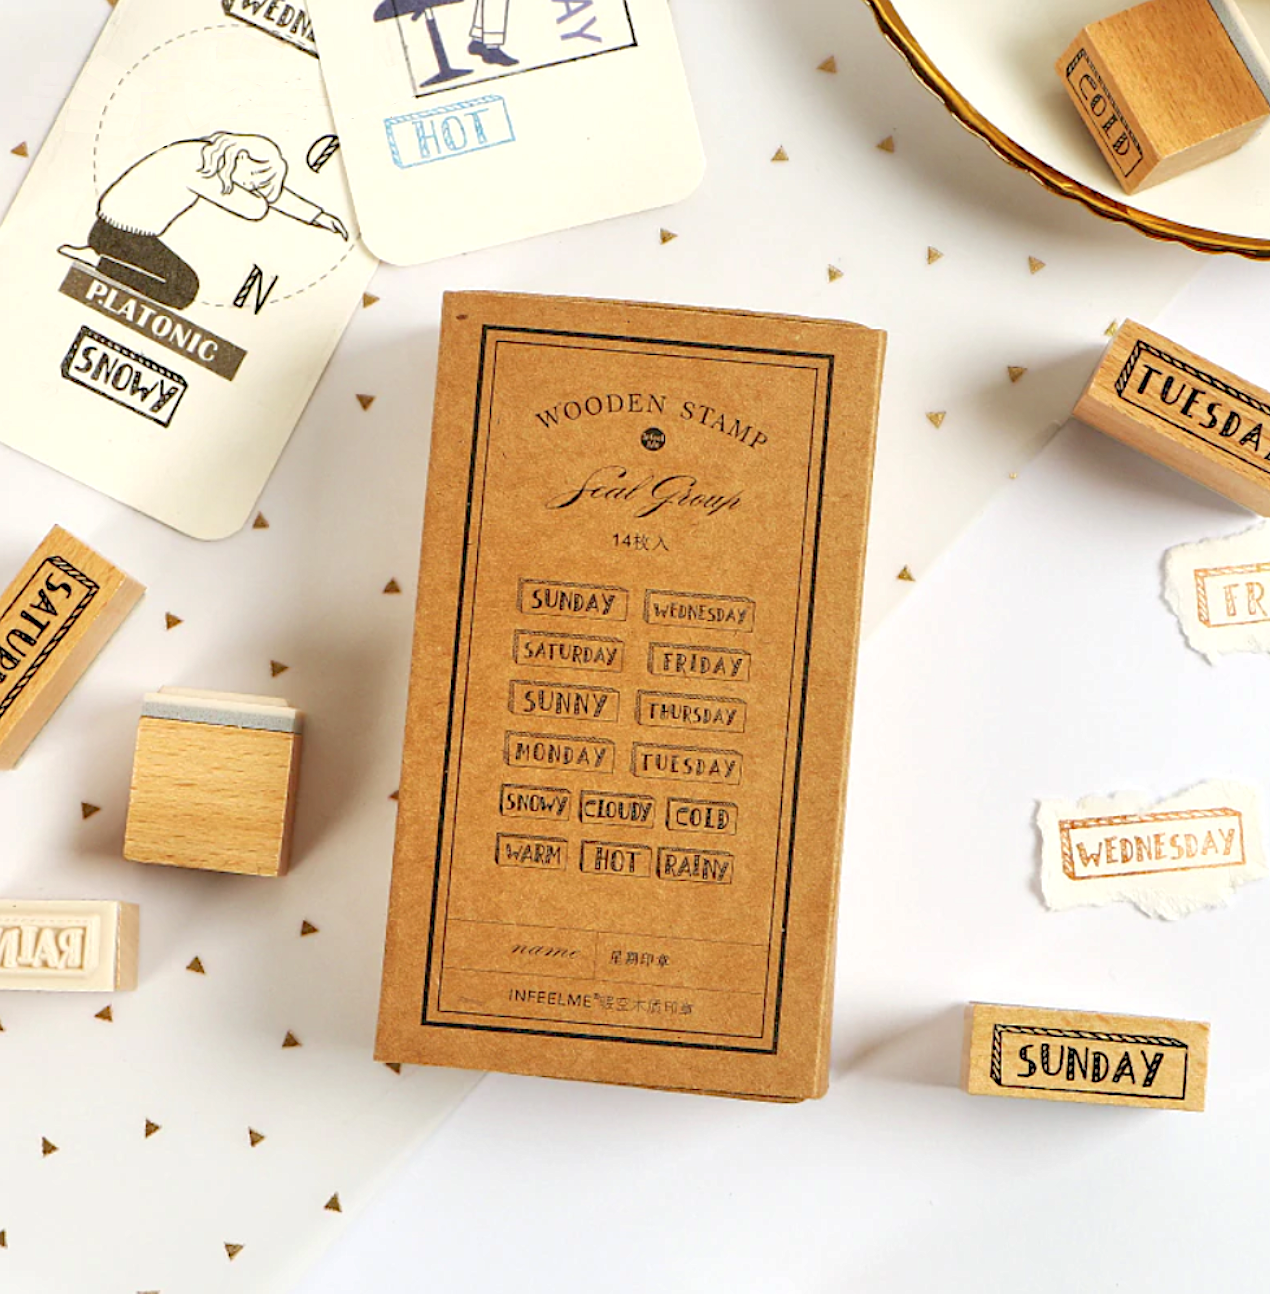 Days Of The Week Wooden Stamps Our Stationery Stamp